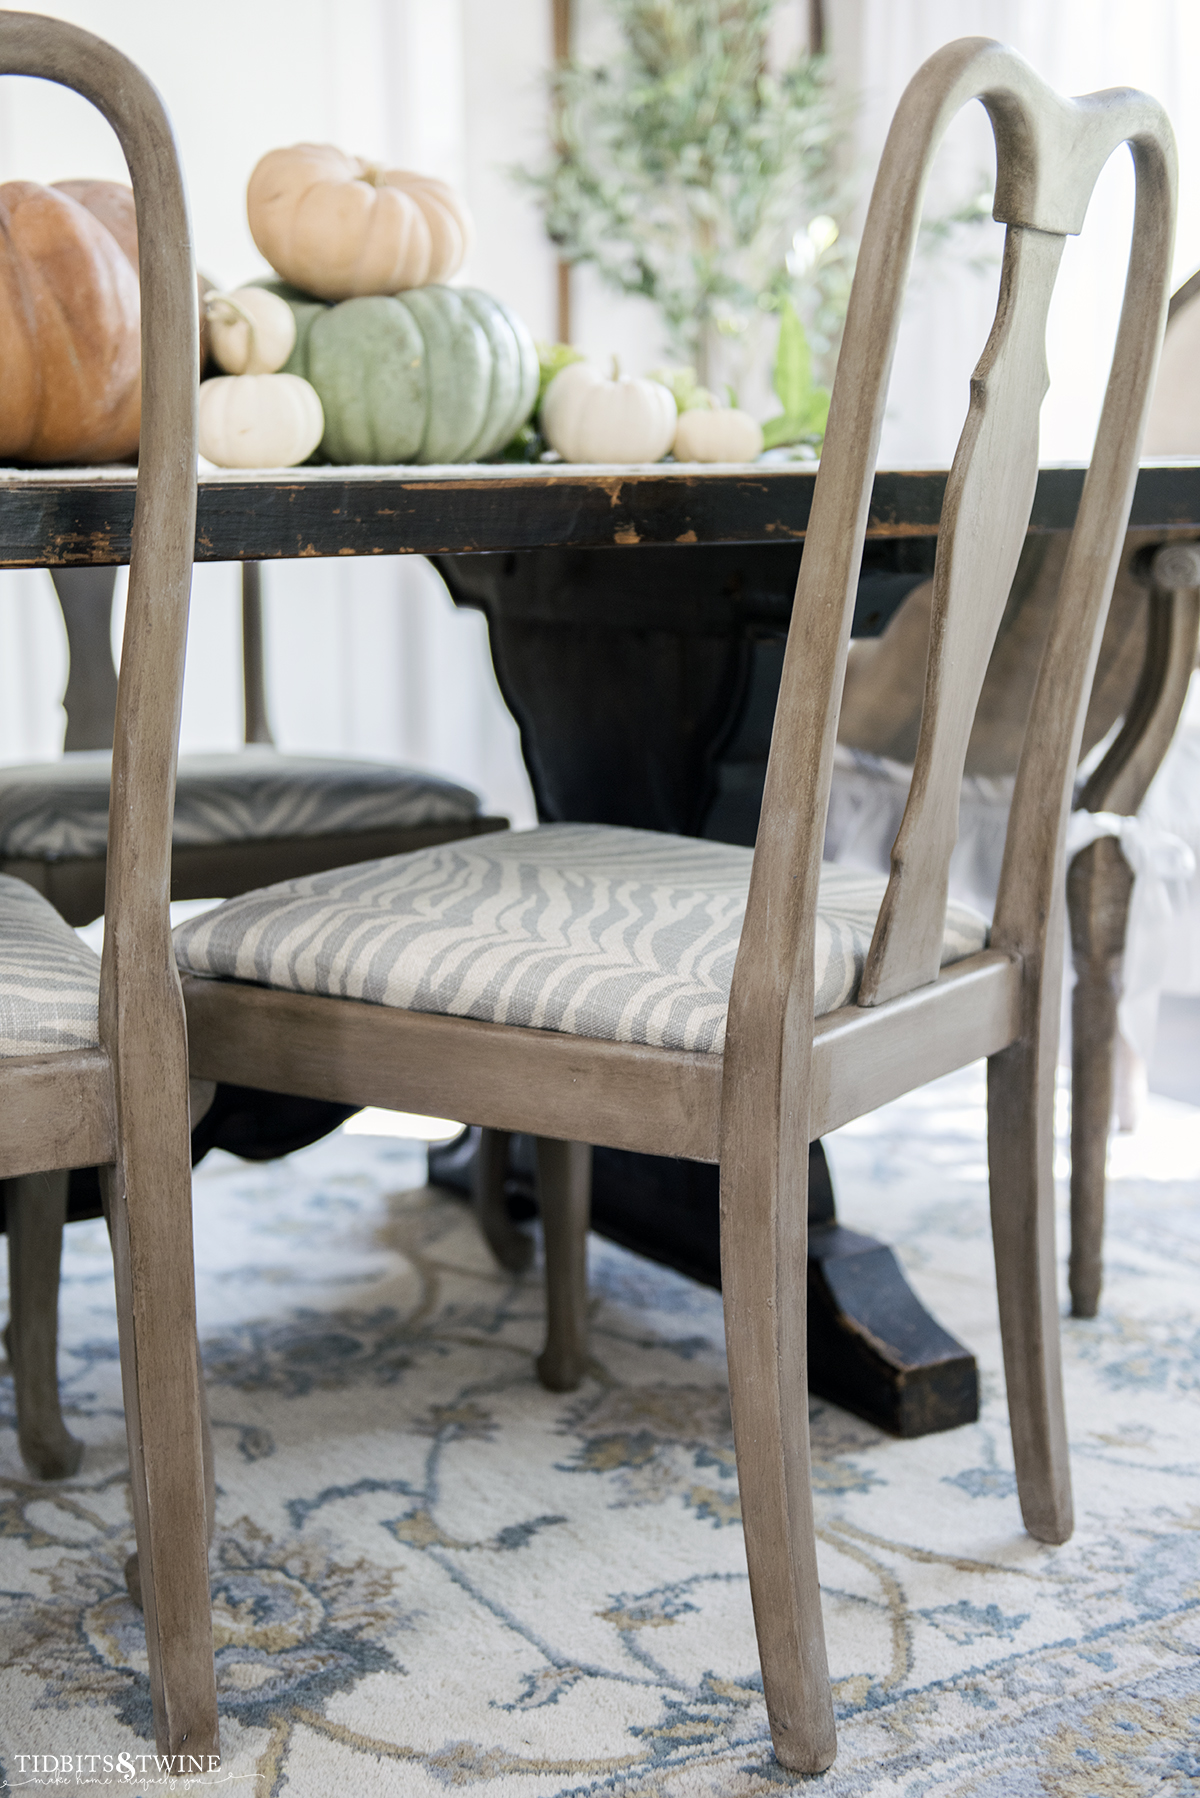 refinished gustavian dining chair with faux wood finish and modern zebra print on chair seat in french dining room